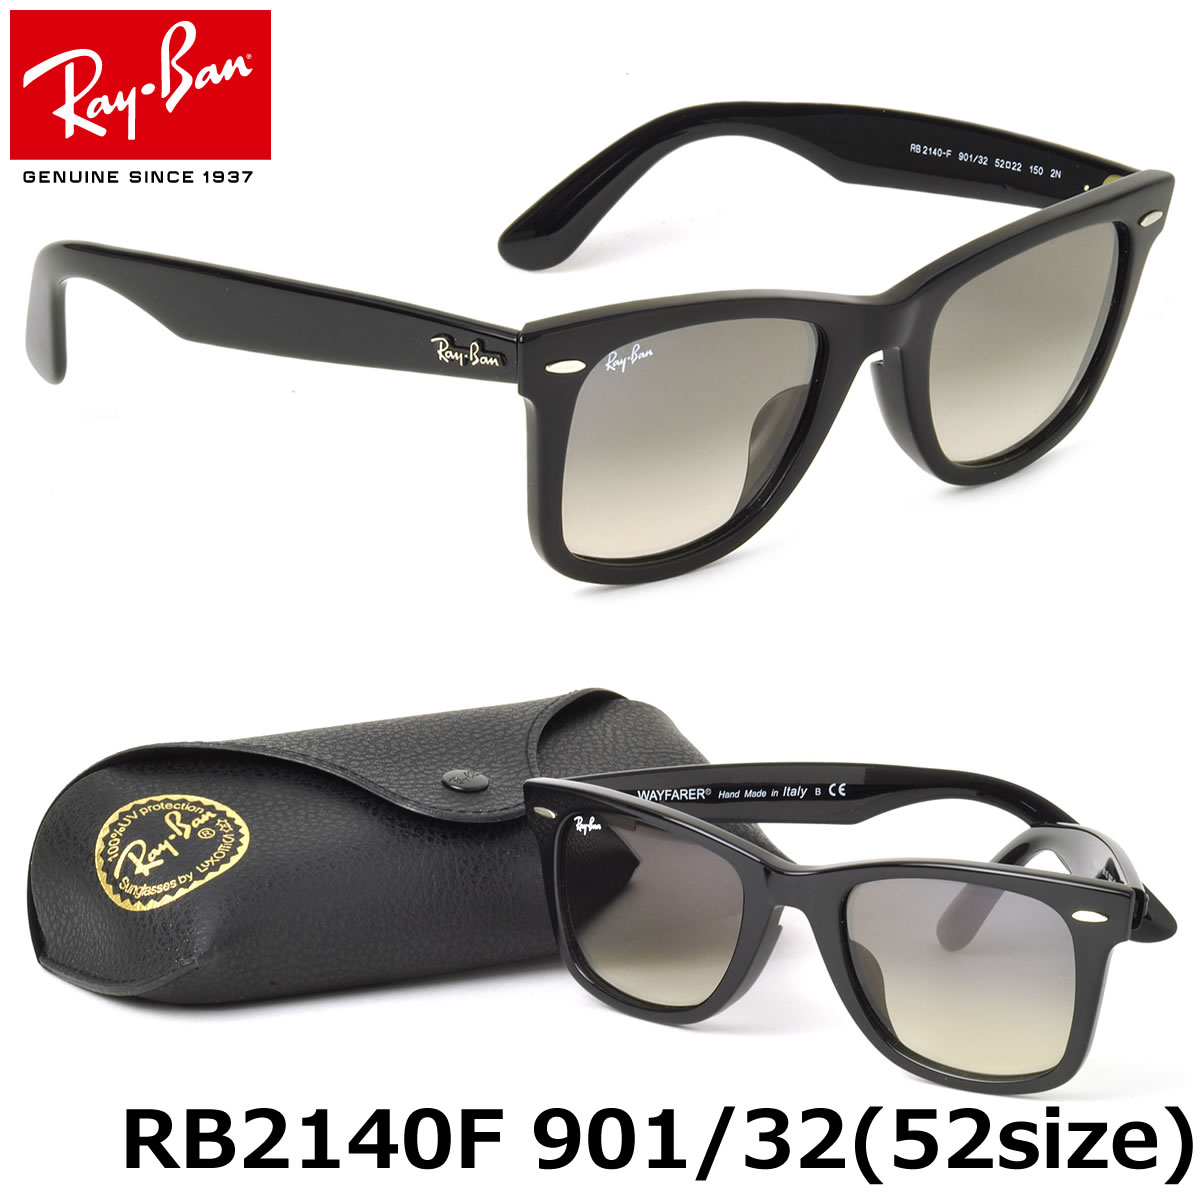 4ad9128e3f39 Ray-Ban Sunglasses RB2140F 901 32 52size WAYFARER FULL FIT (for Asian)  GENUINE NEW rayban ray ban